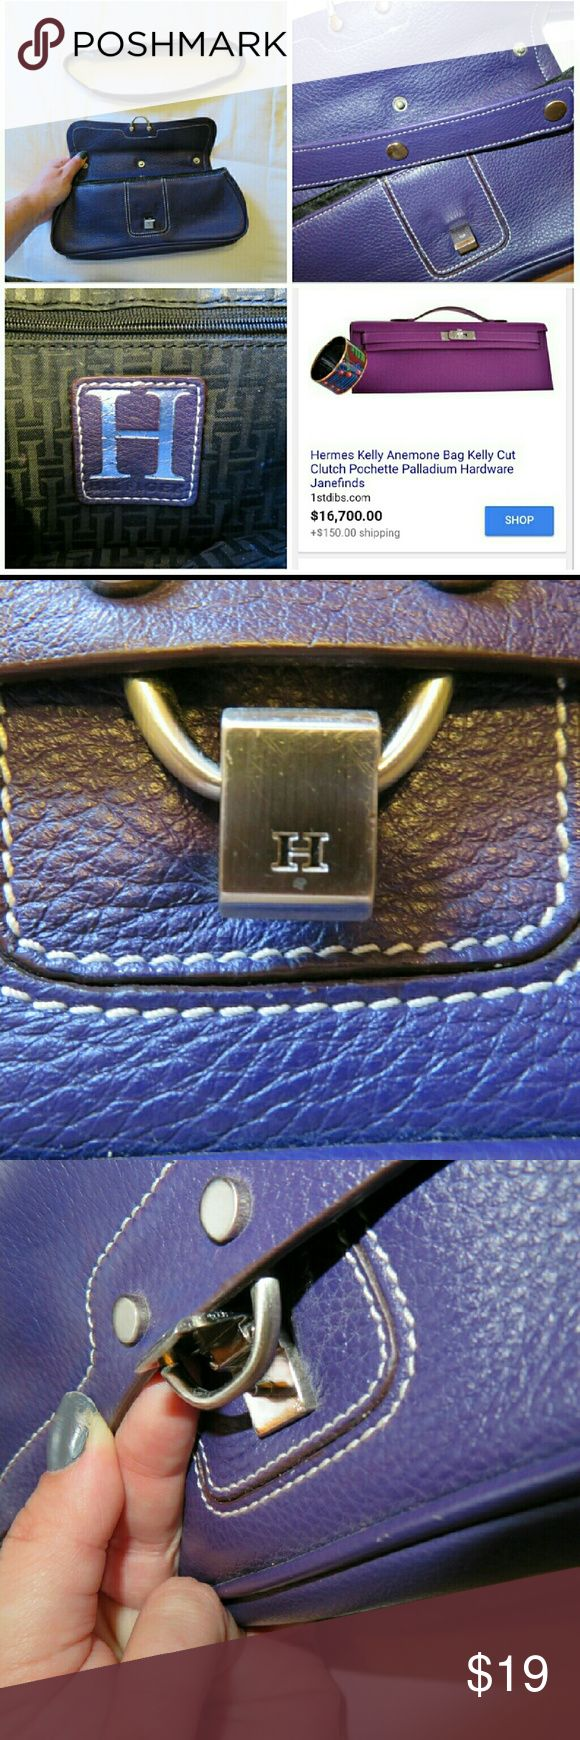 """""""H""""Hermes like purple clutch with detachable strap Similar to the Hermes Kelly Anemone bag I purchased at a Mom&Pop antique and trinket shop in Minneapolis thinking it was a great Hermes inspired bag but after carrying only a few times, quickly realized that as much as I want to be a clutch gal, I'm a tote girl at heart.  Minor scratches on the latch  It is a fabulous bag and although I'm unsure of the brand, I was told it was Tommy Hilfiger. I can't prove brand though. Either way, quality…"""